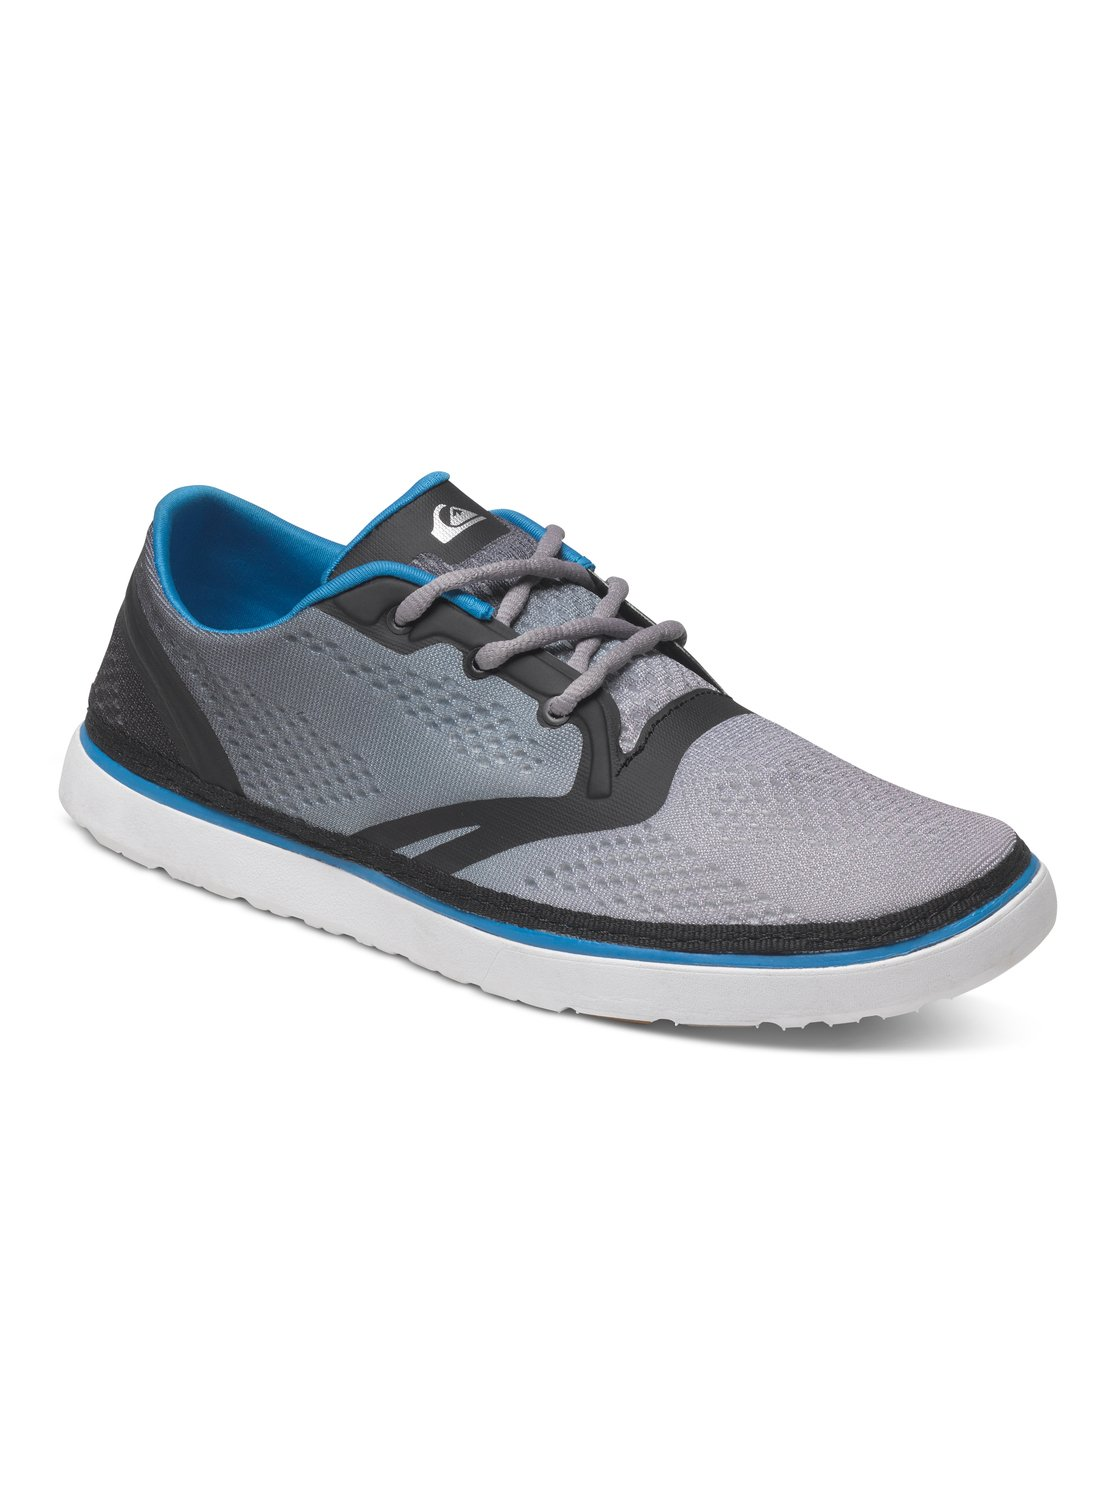 quiksilver ag47 hibian shoes ebay